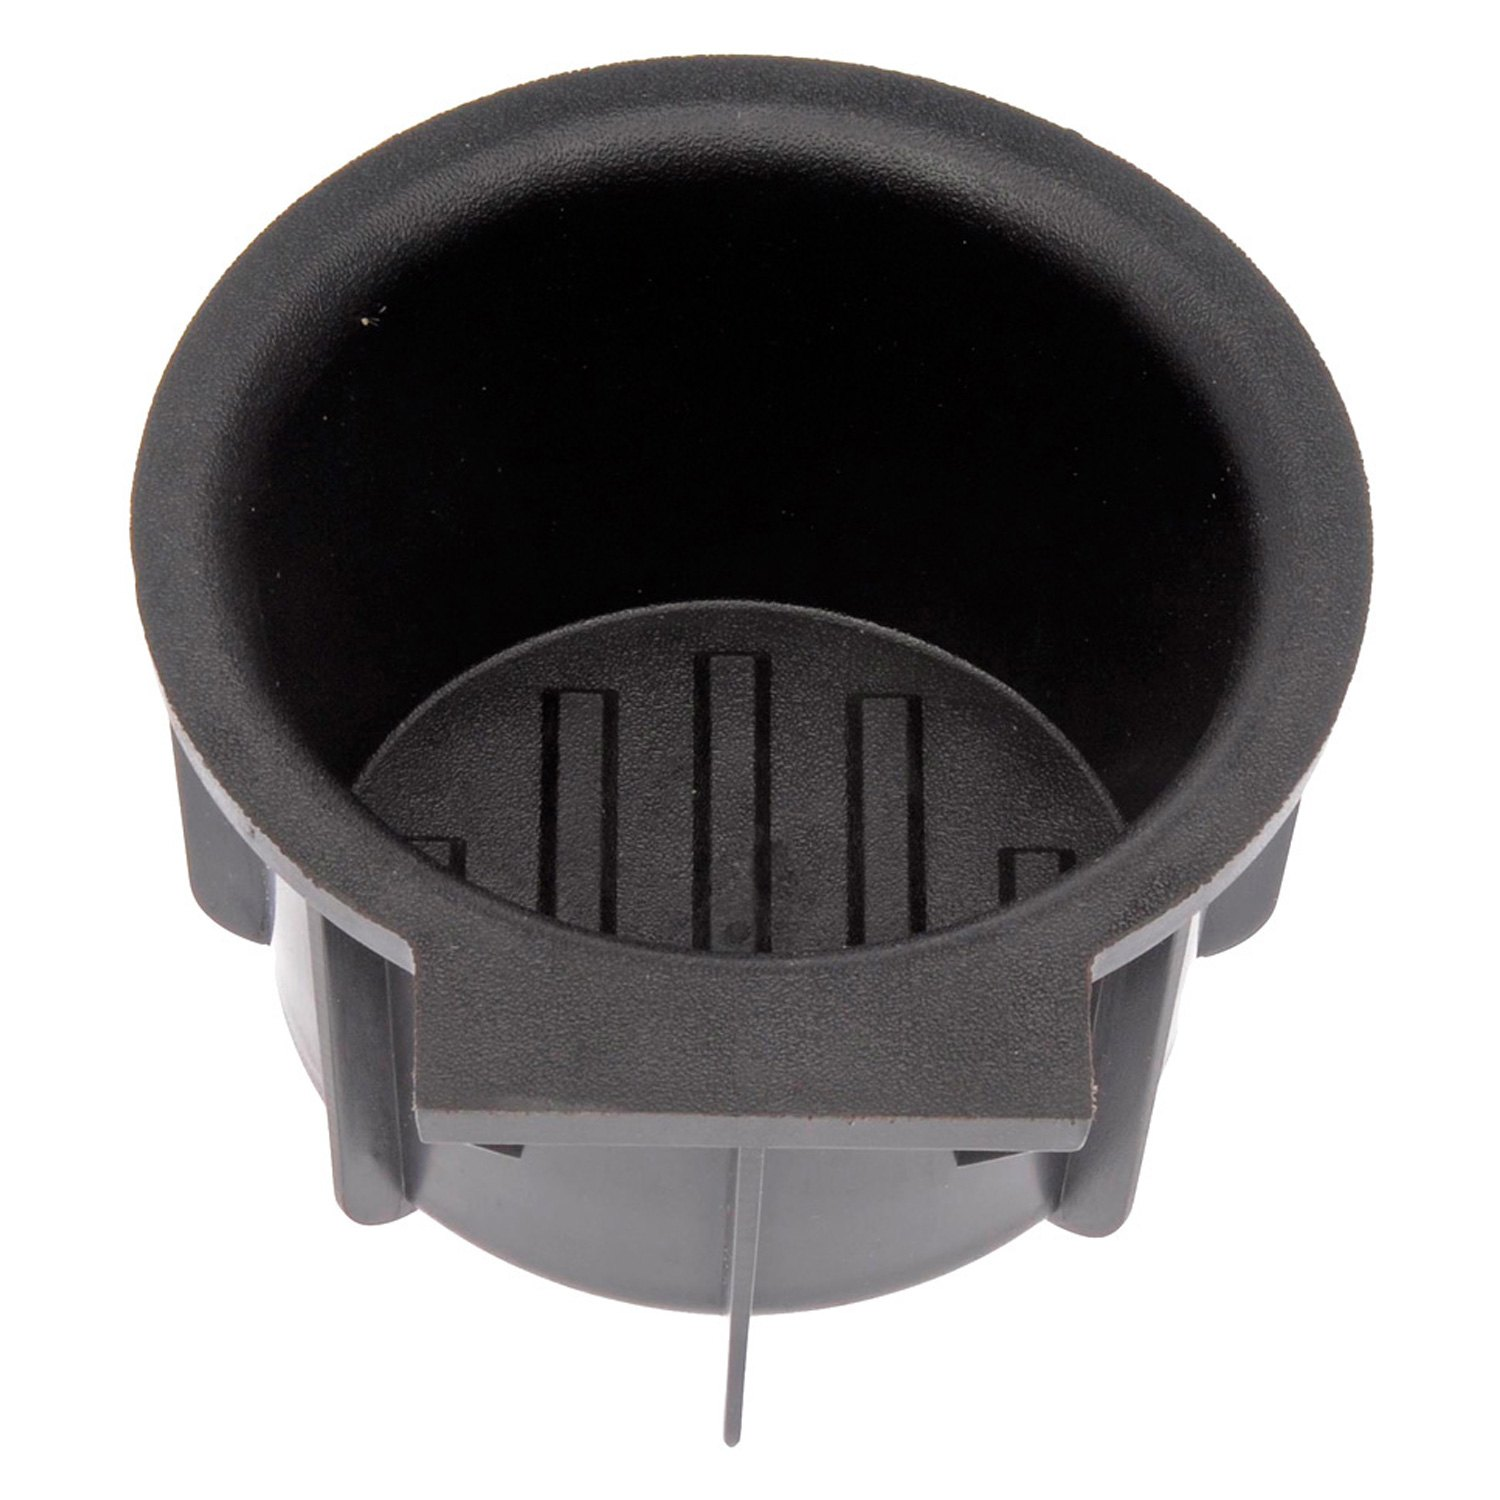 Dorman ford f 150 2013 front cup holder - 2013 ford explorer interior parts ...